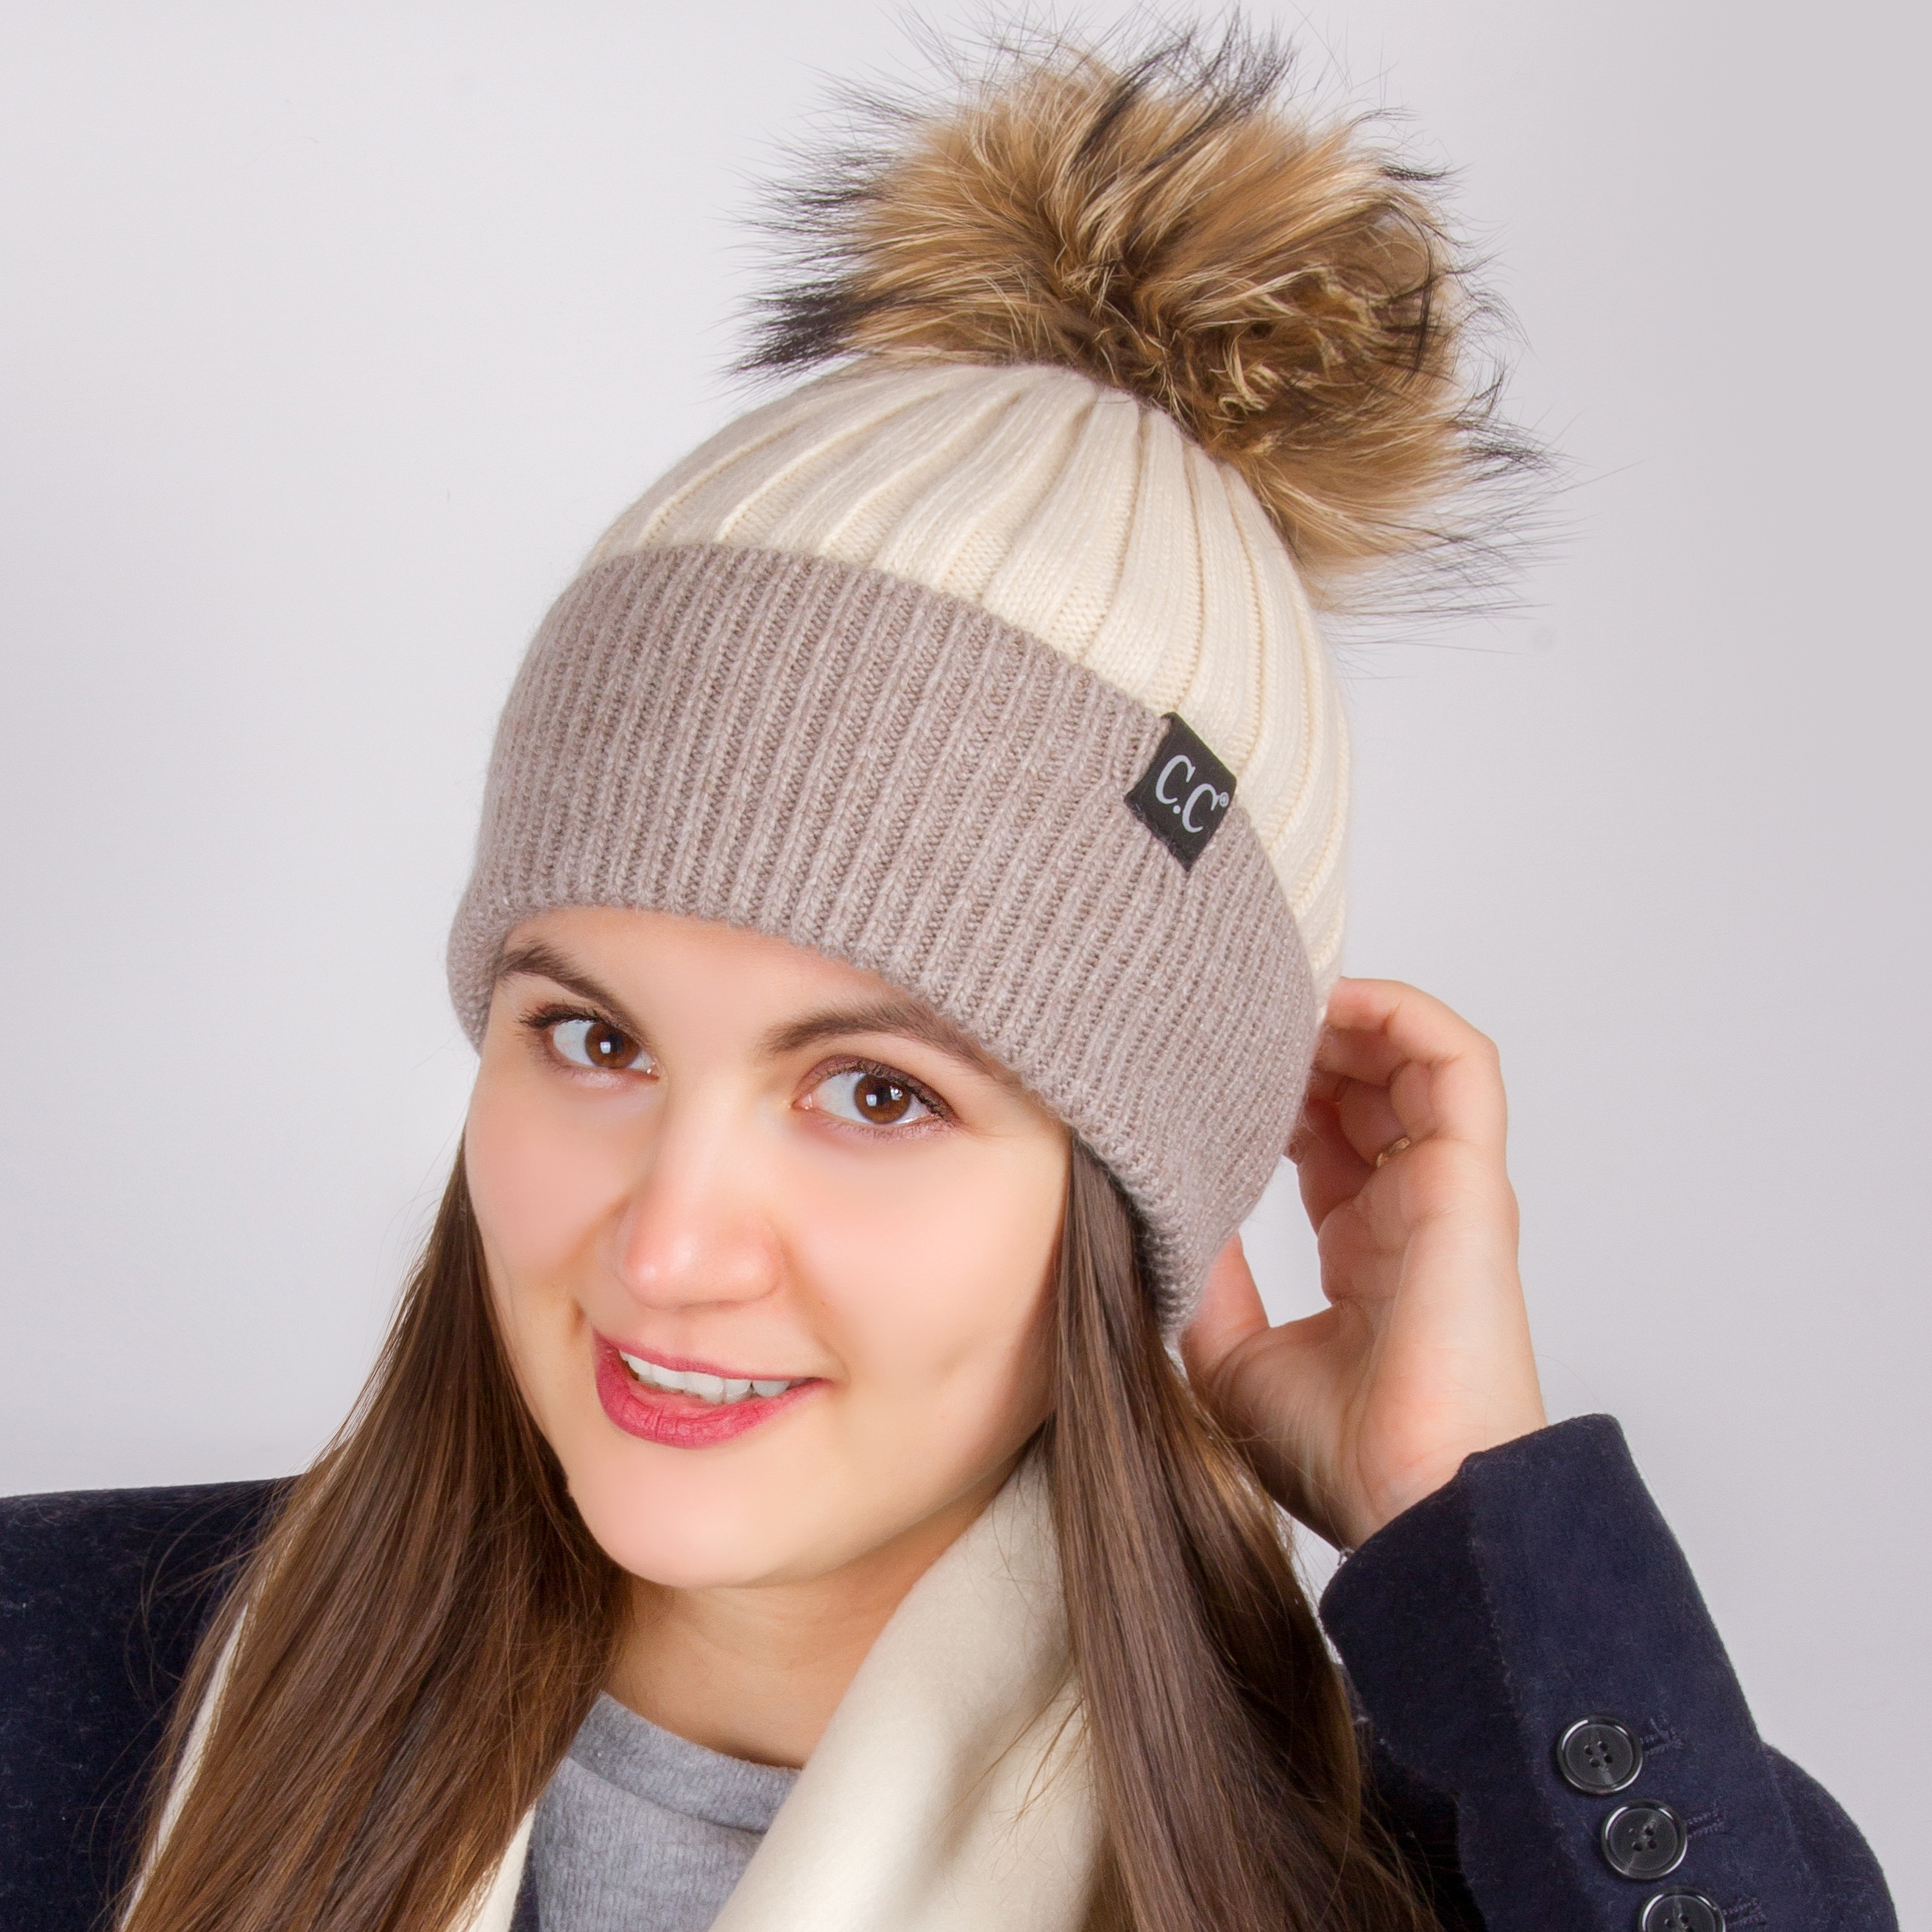 10eff1ea1d7c7 Two Tone Beanie Hat with Fur Pom-pom in Beige   Taupe